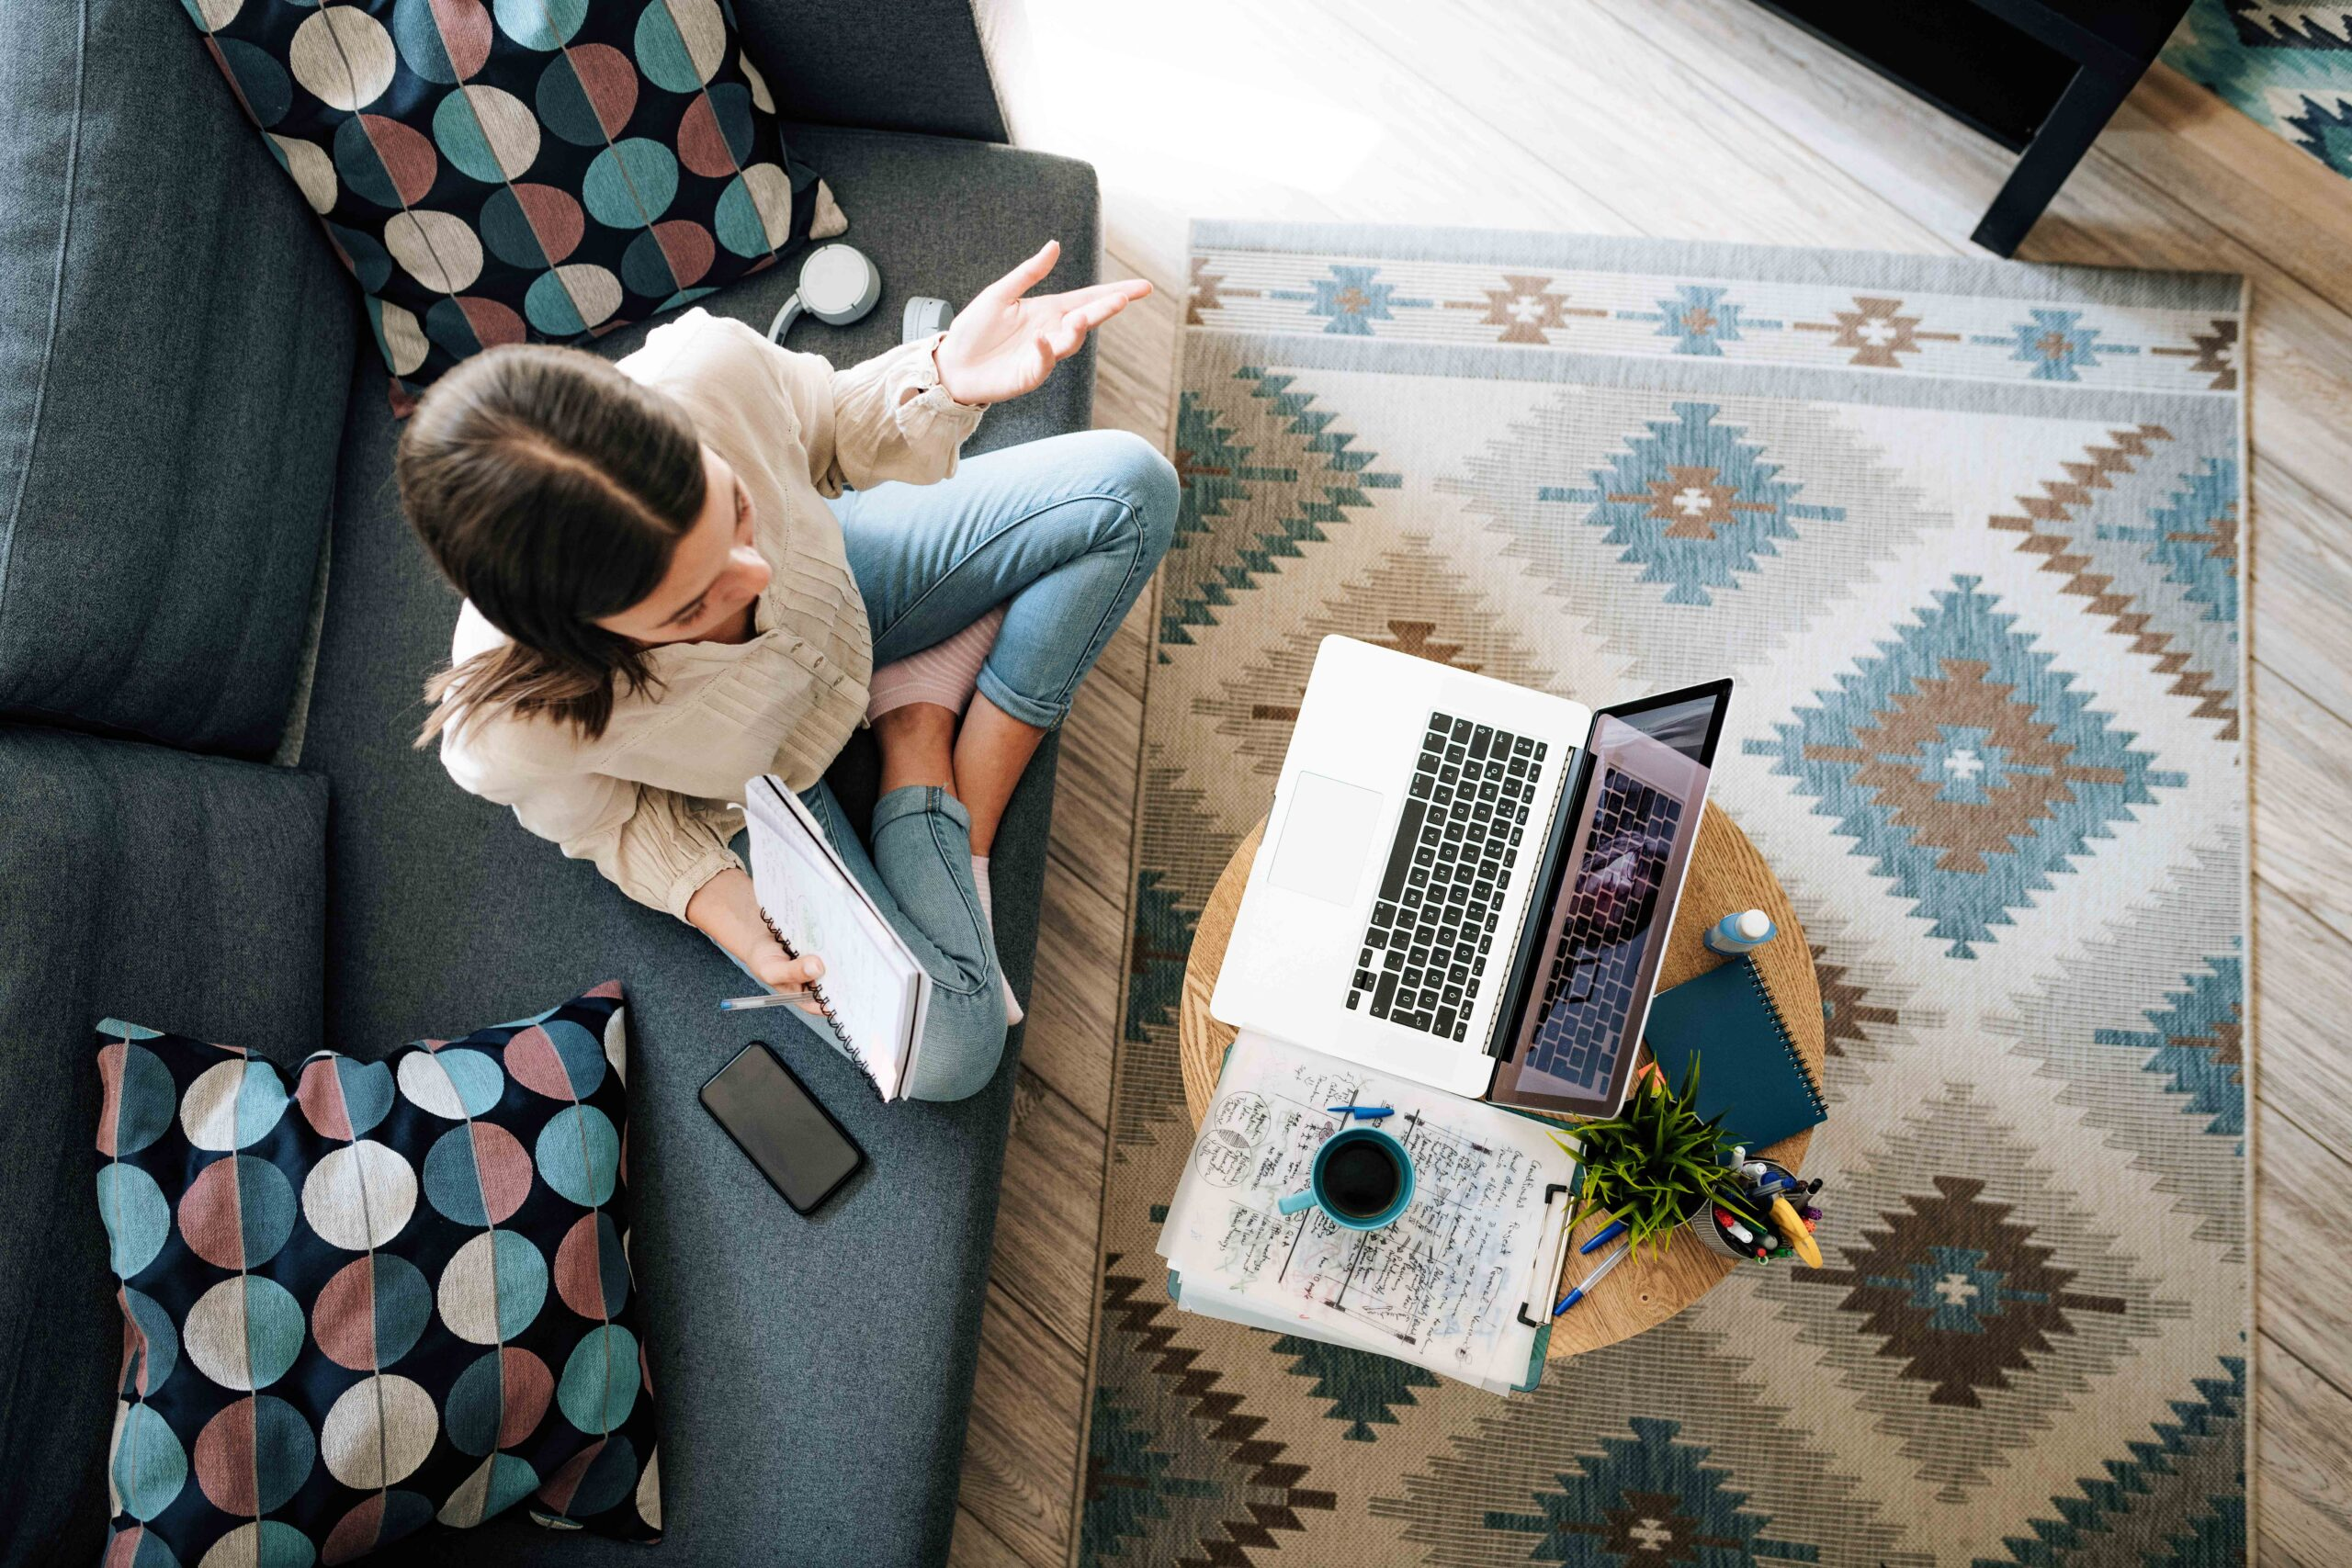 Young woman at home, working and studying from home